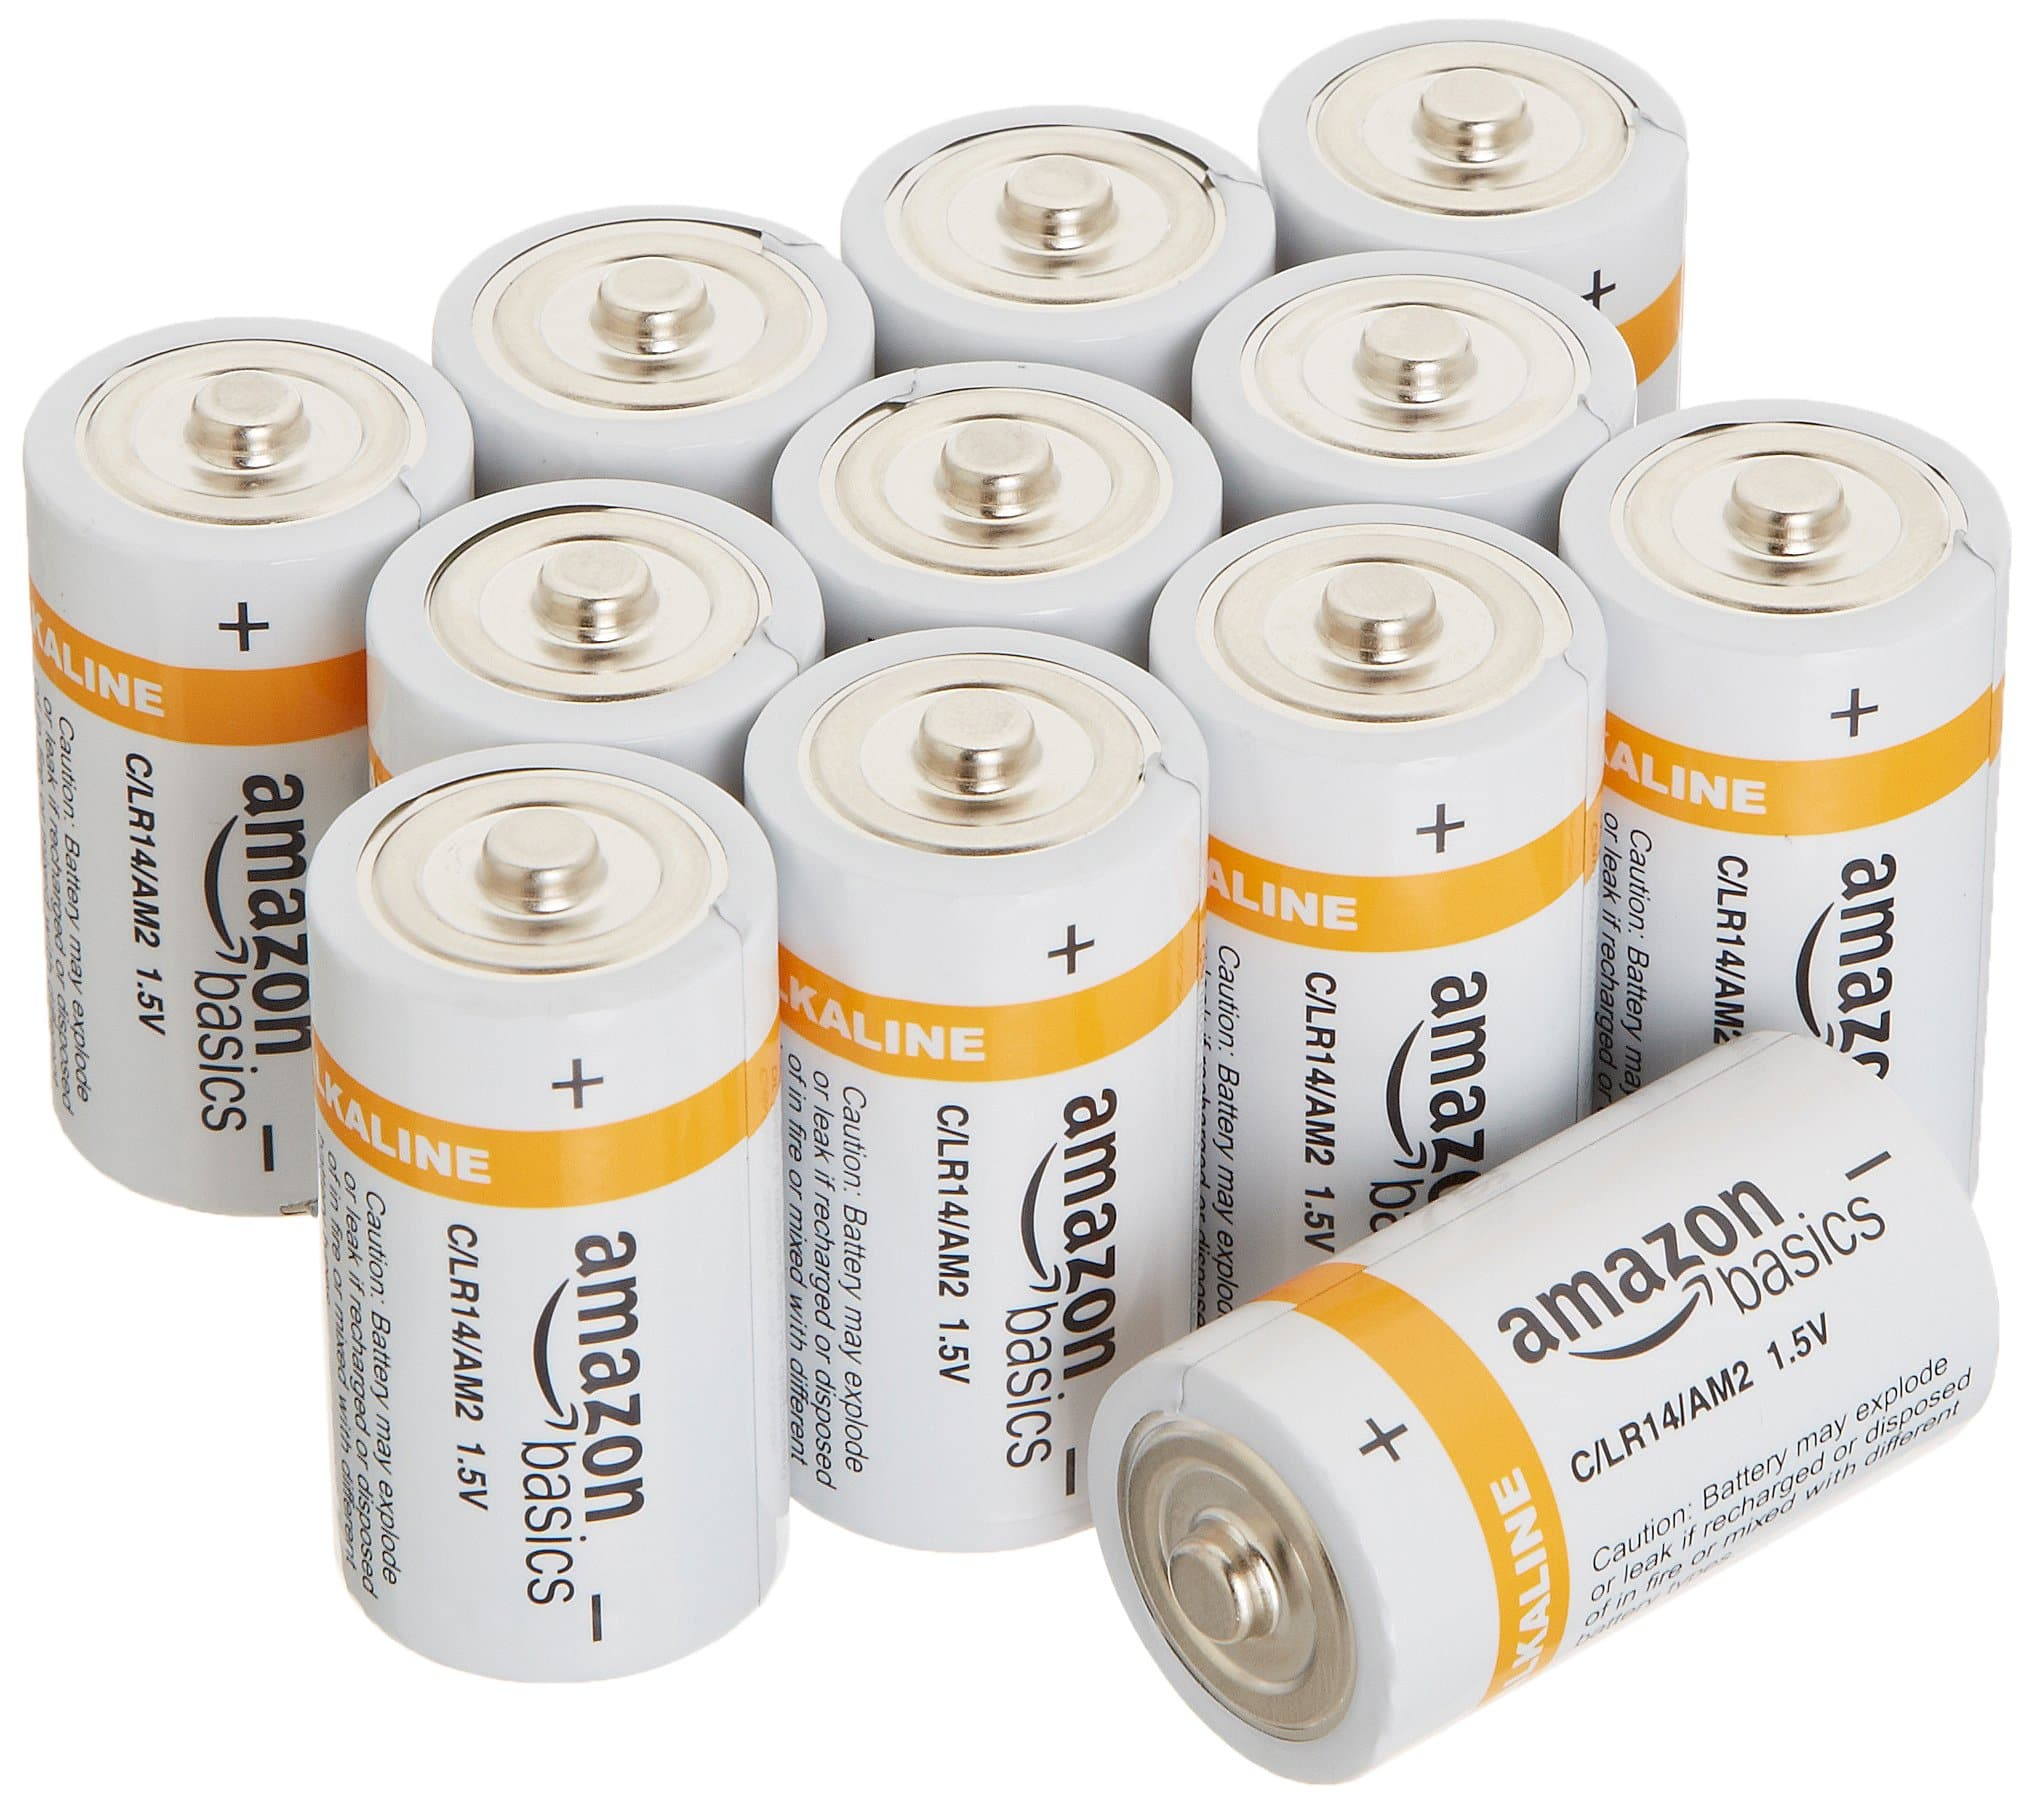 Amazon Basics D Cell  Batteries (12-Pack) $8.99 + free Prime shipping